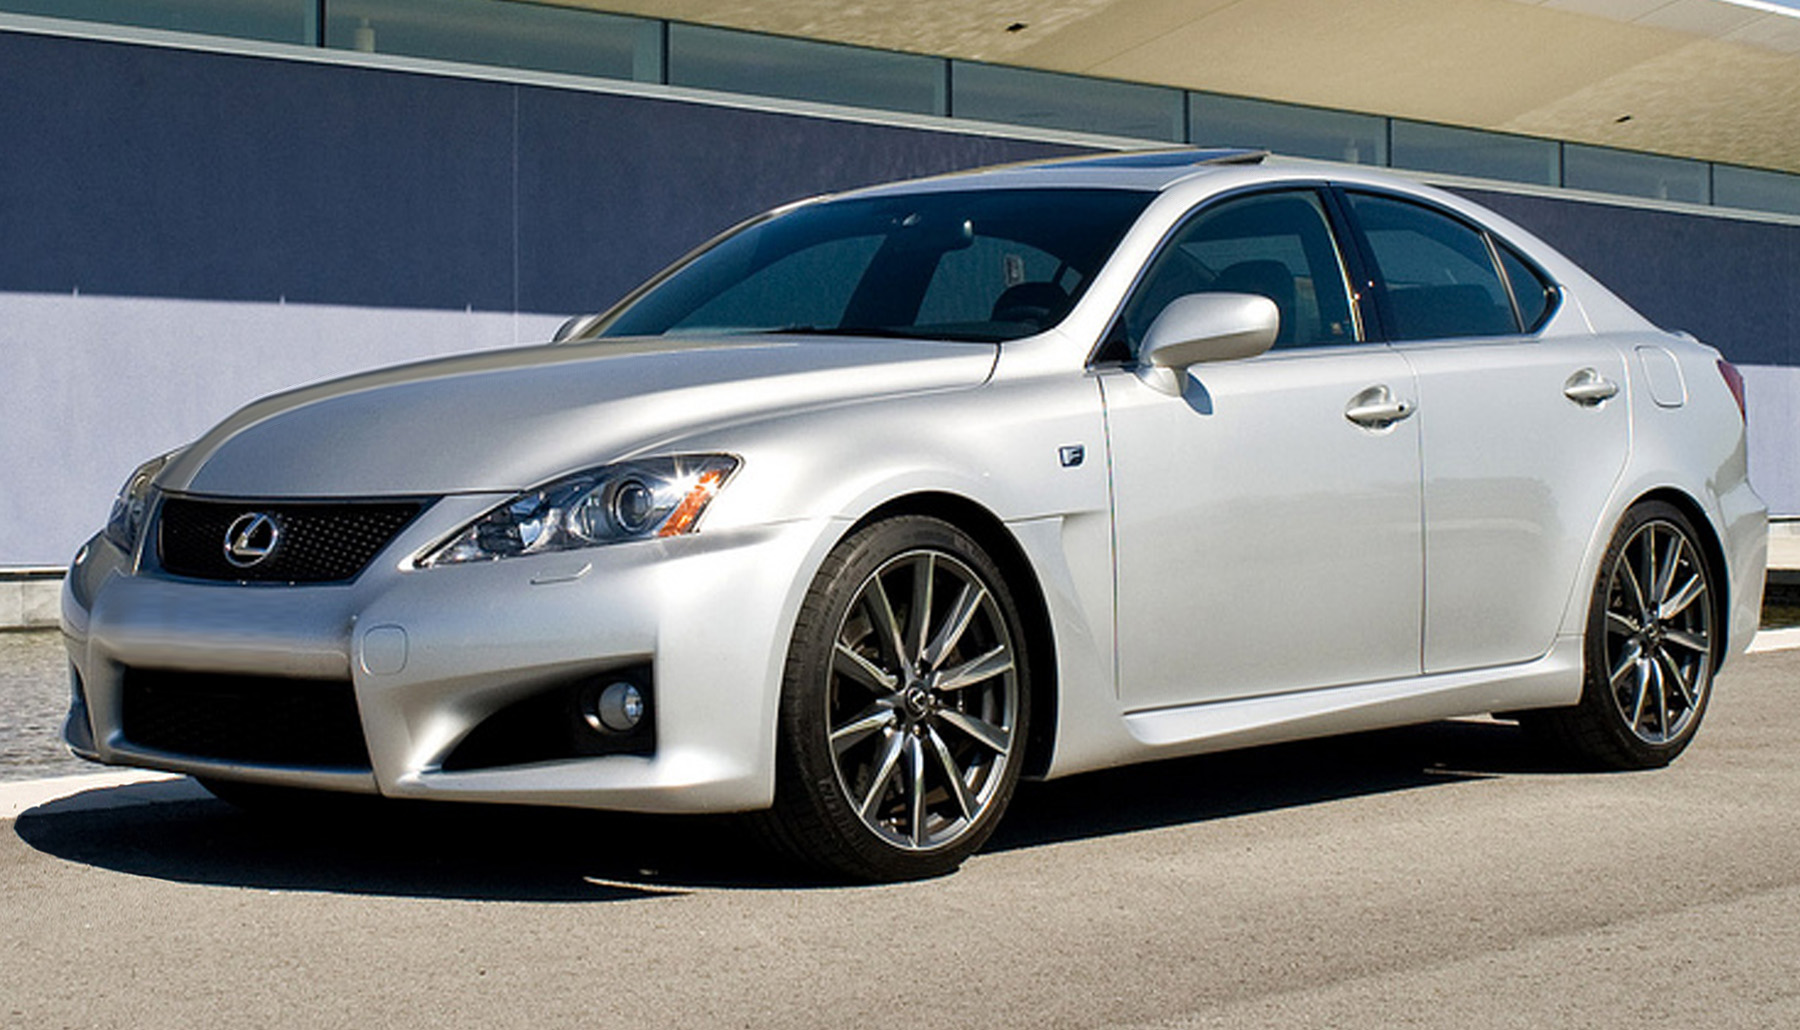 2009 Lexus Is F #4